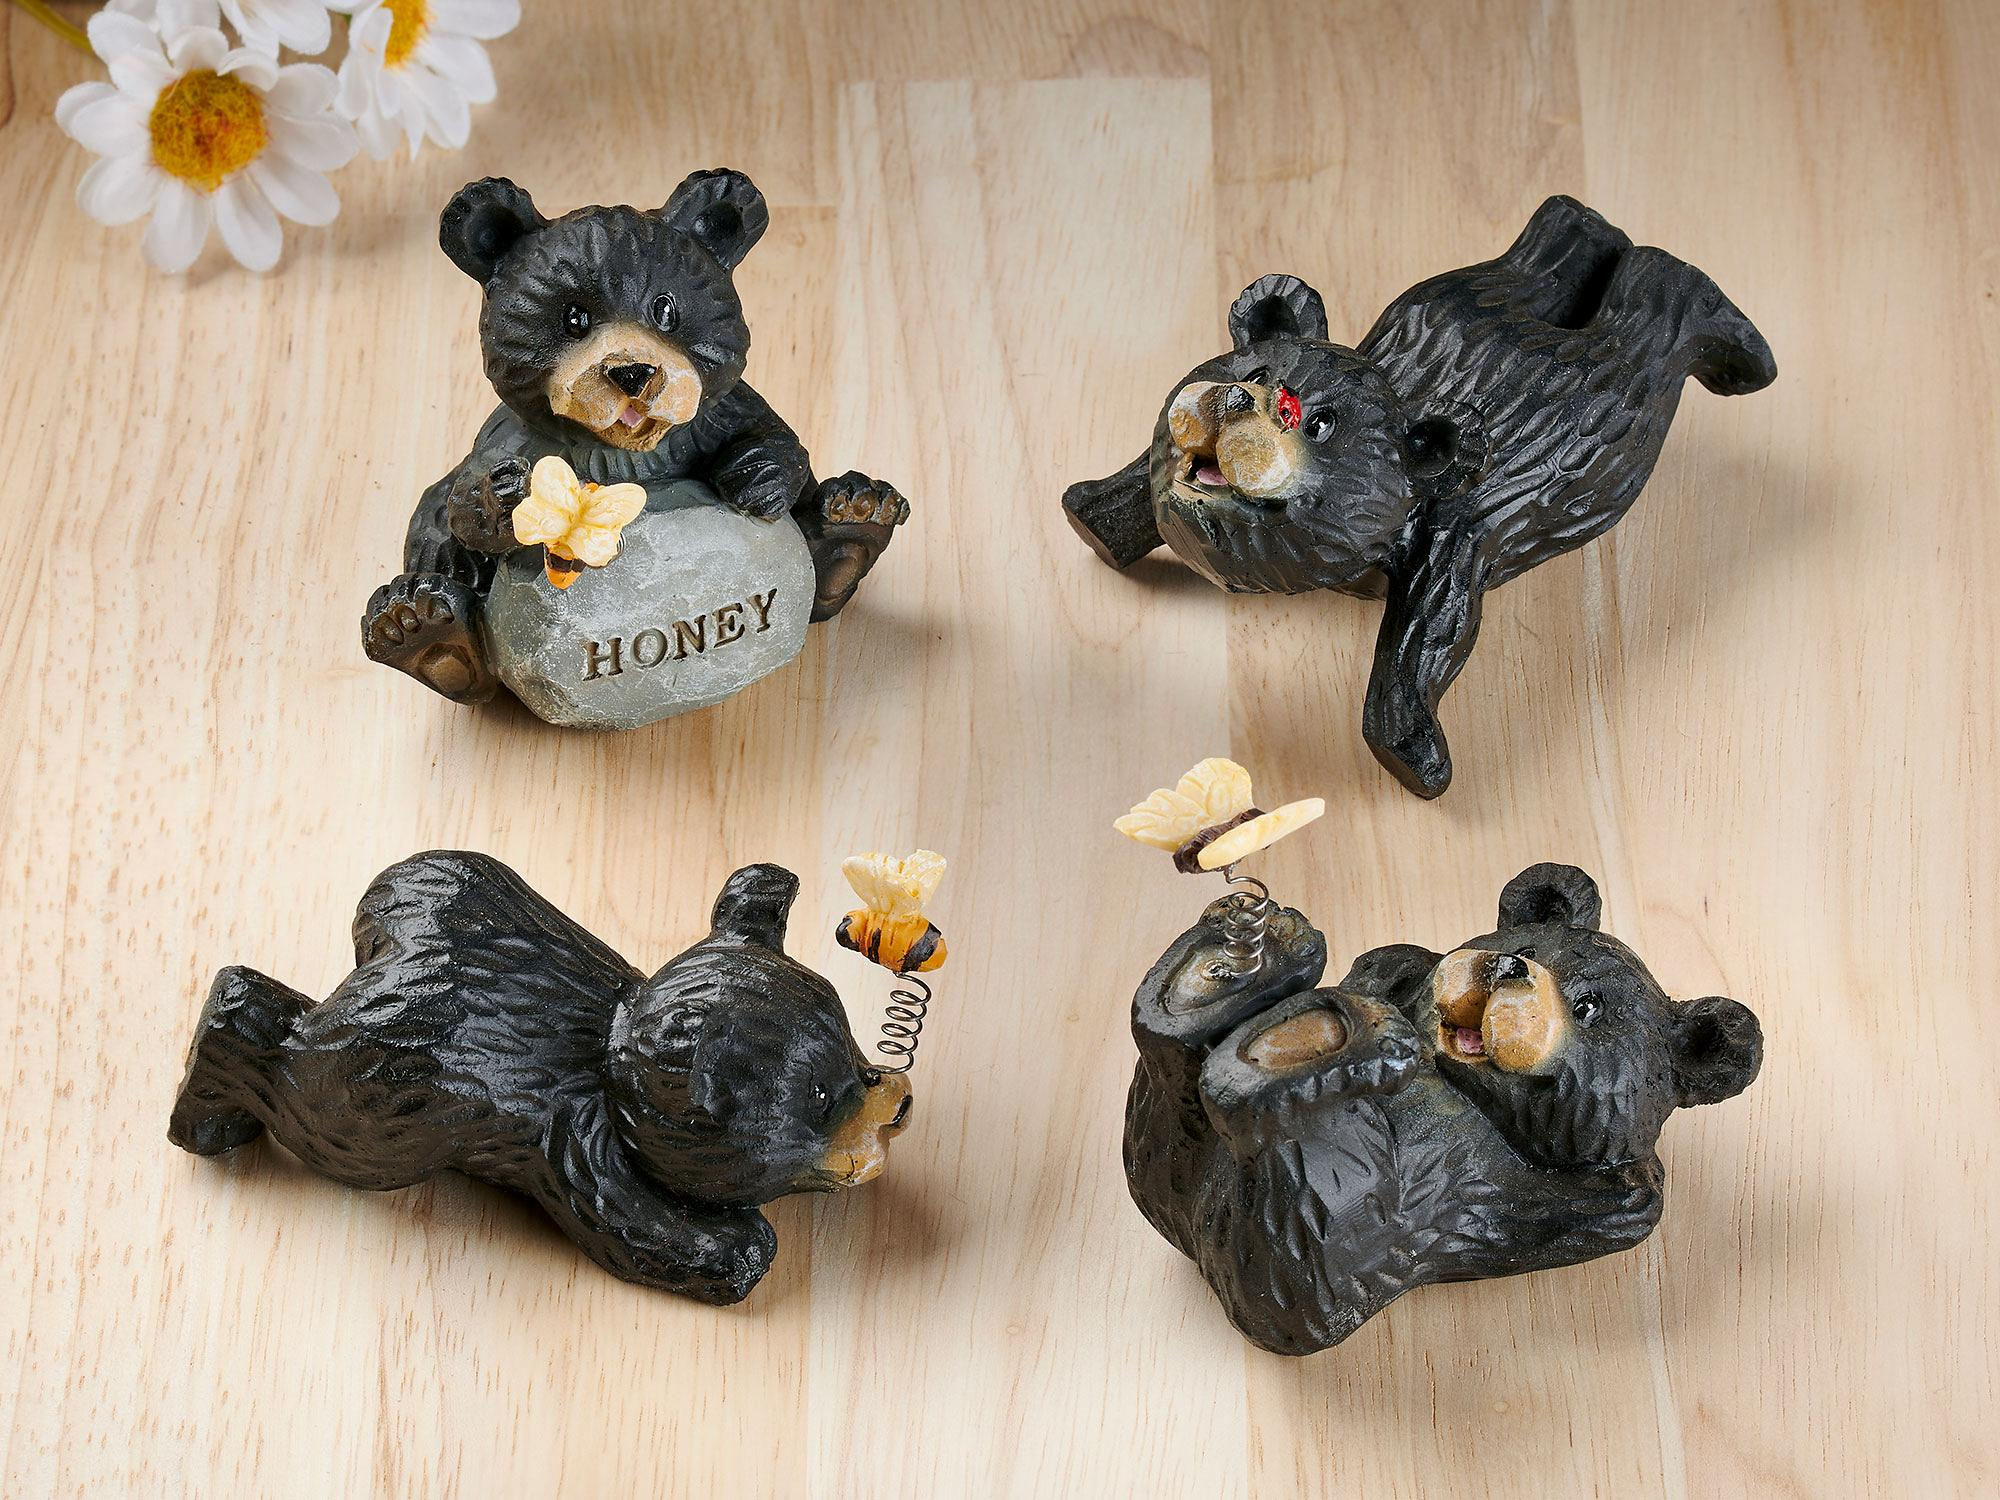 Frolicking in Happiness Bear Sculptures